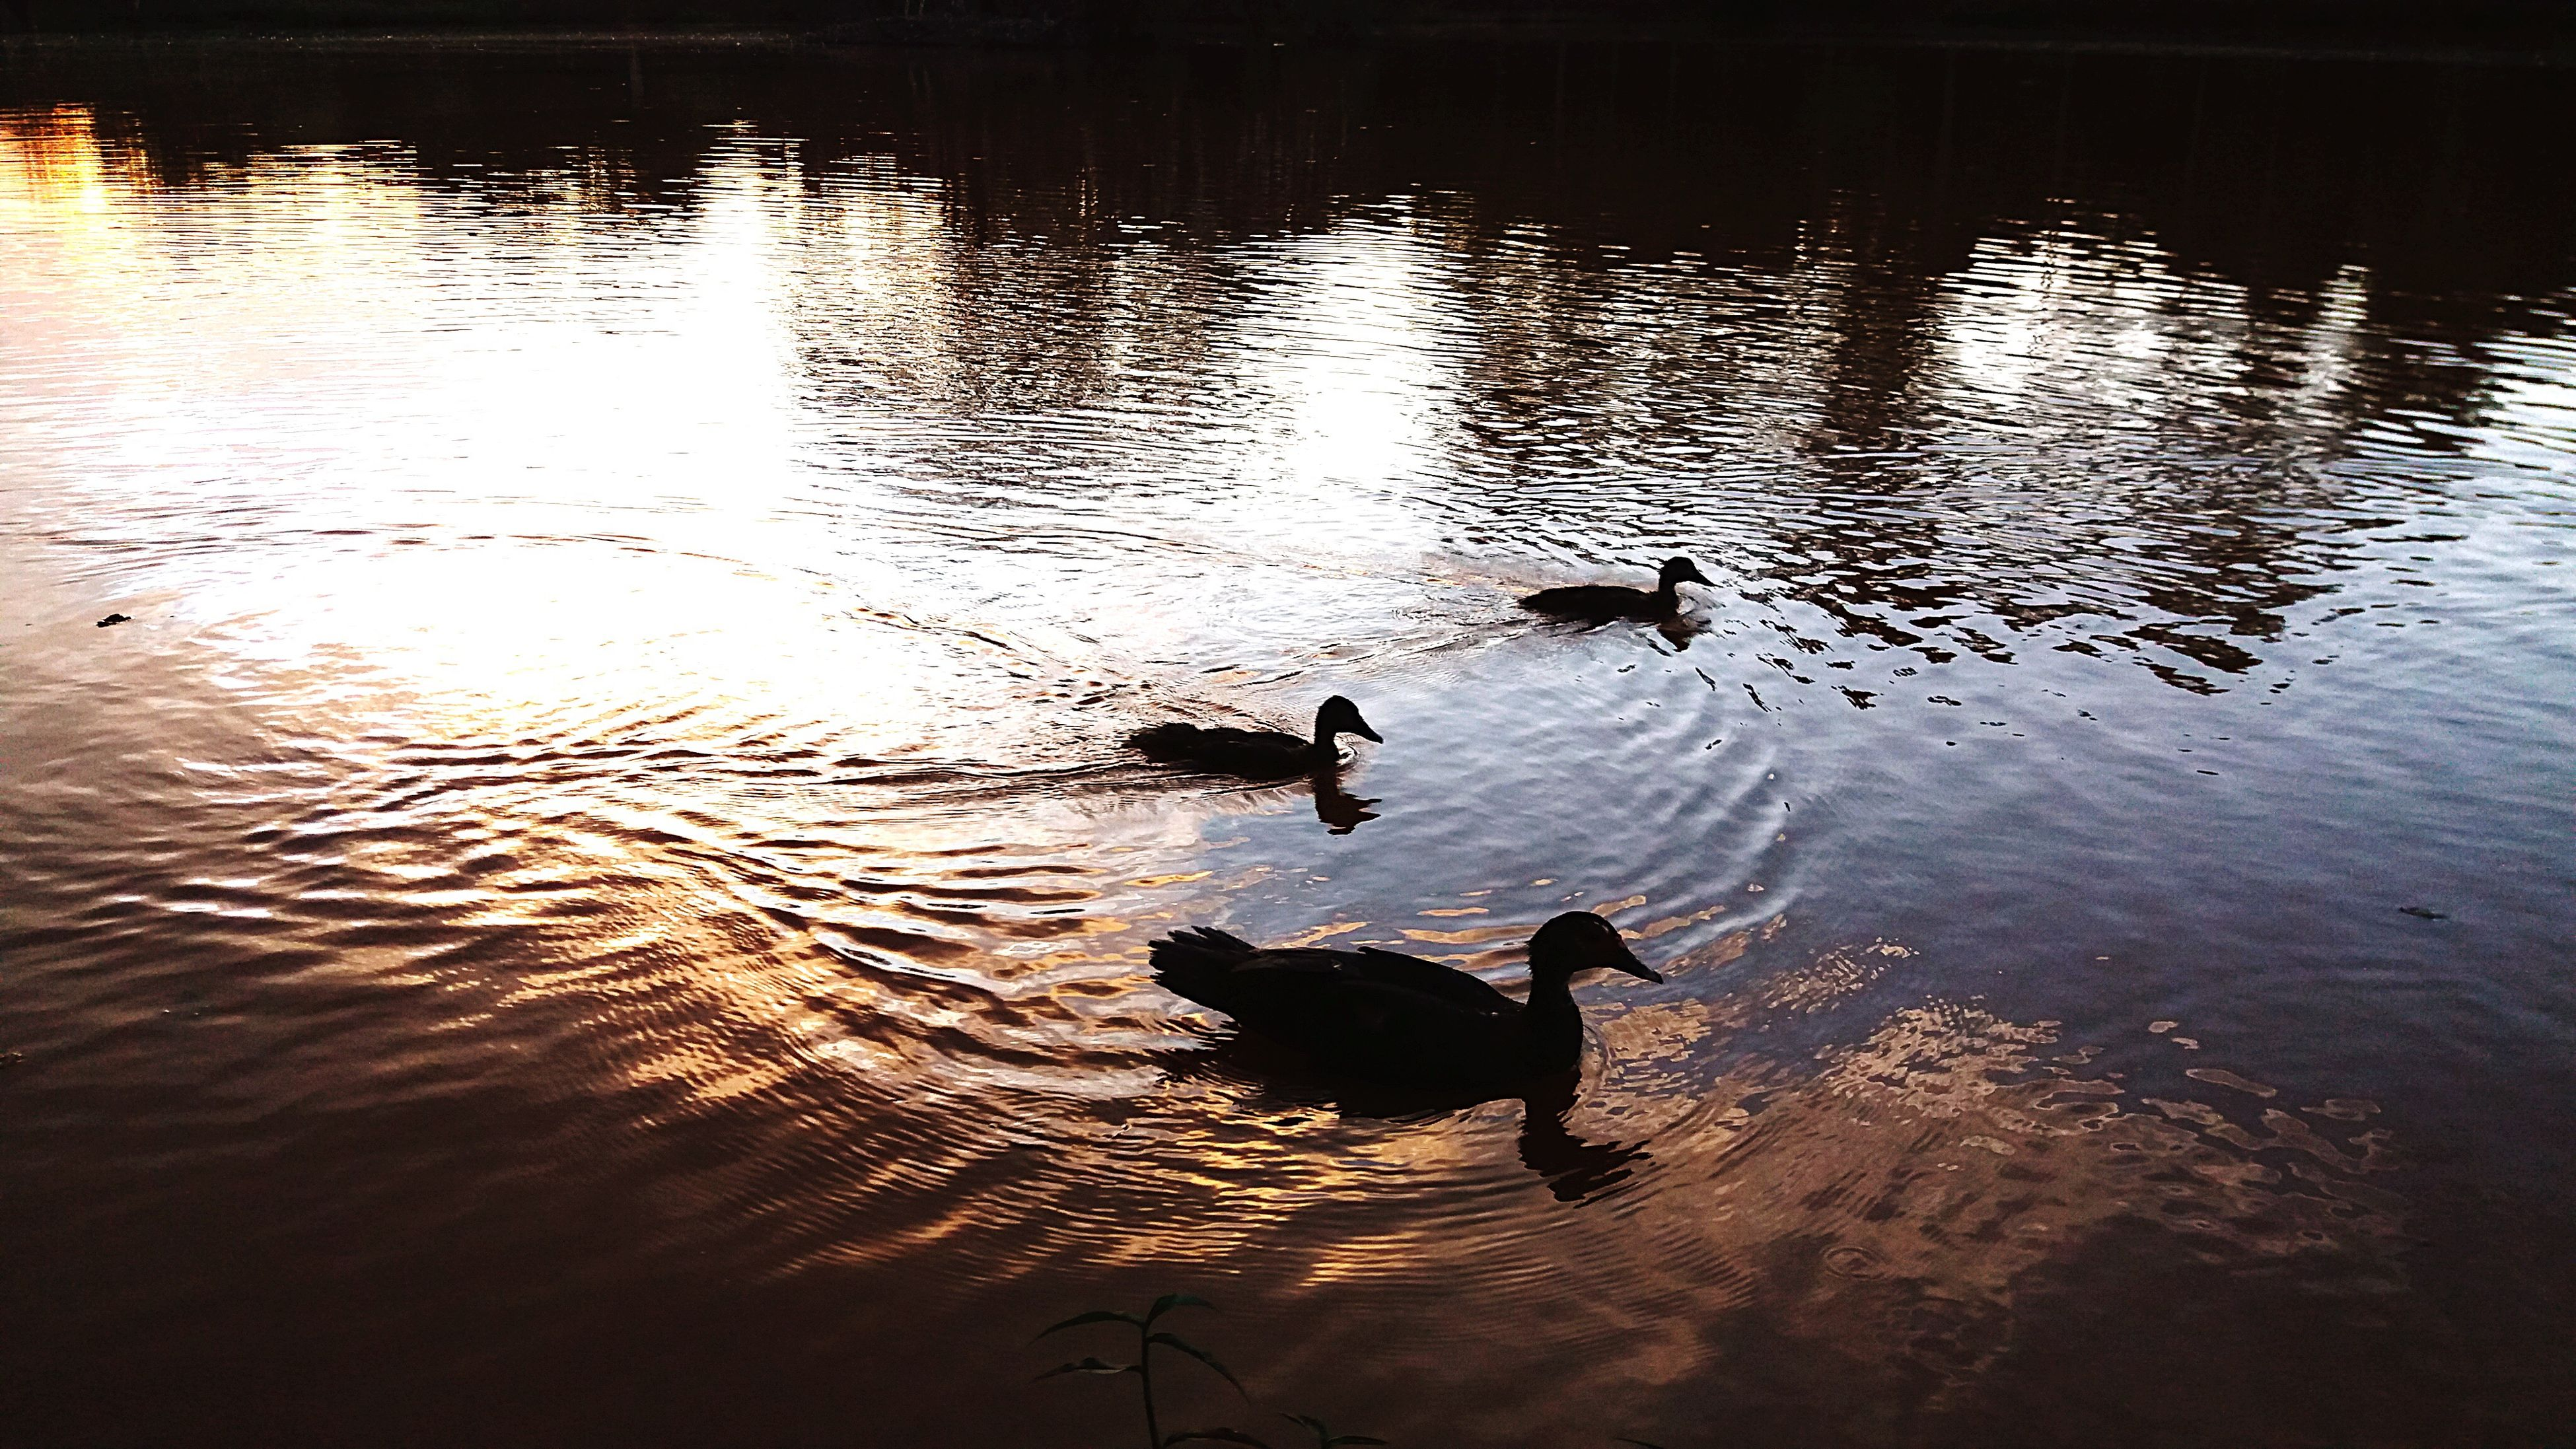 water, animal themes, reflection, nature, no people, sunset, lake, outdoors, mammal, day